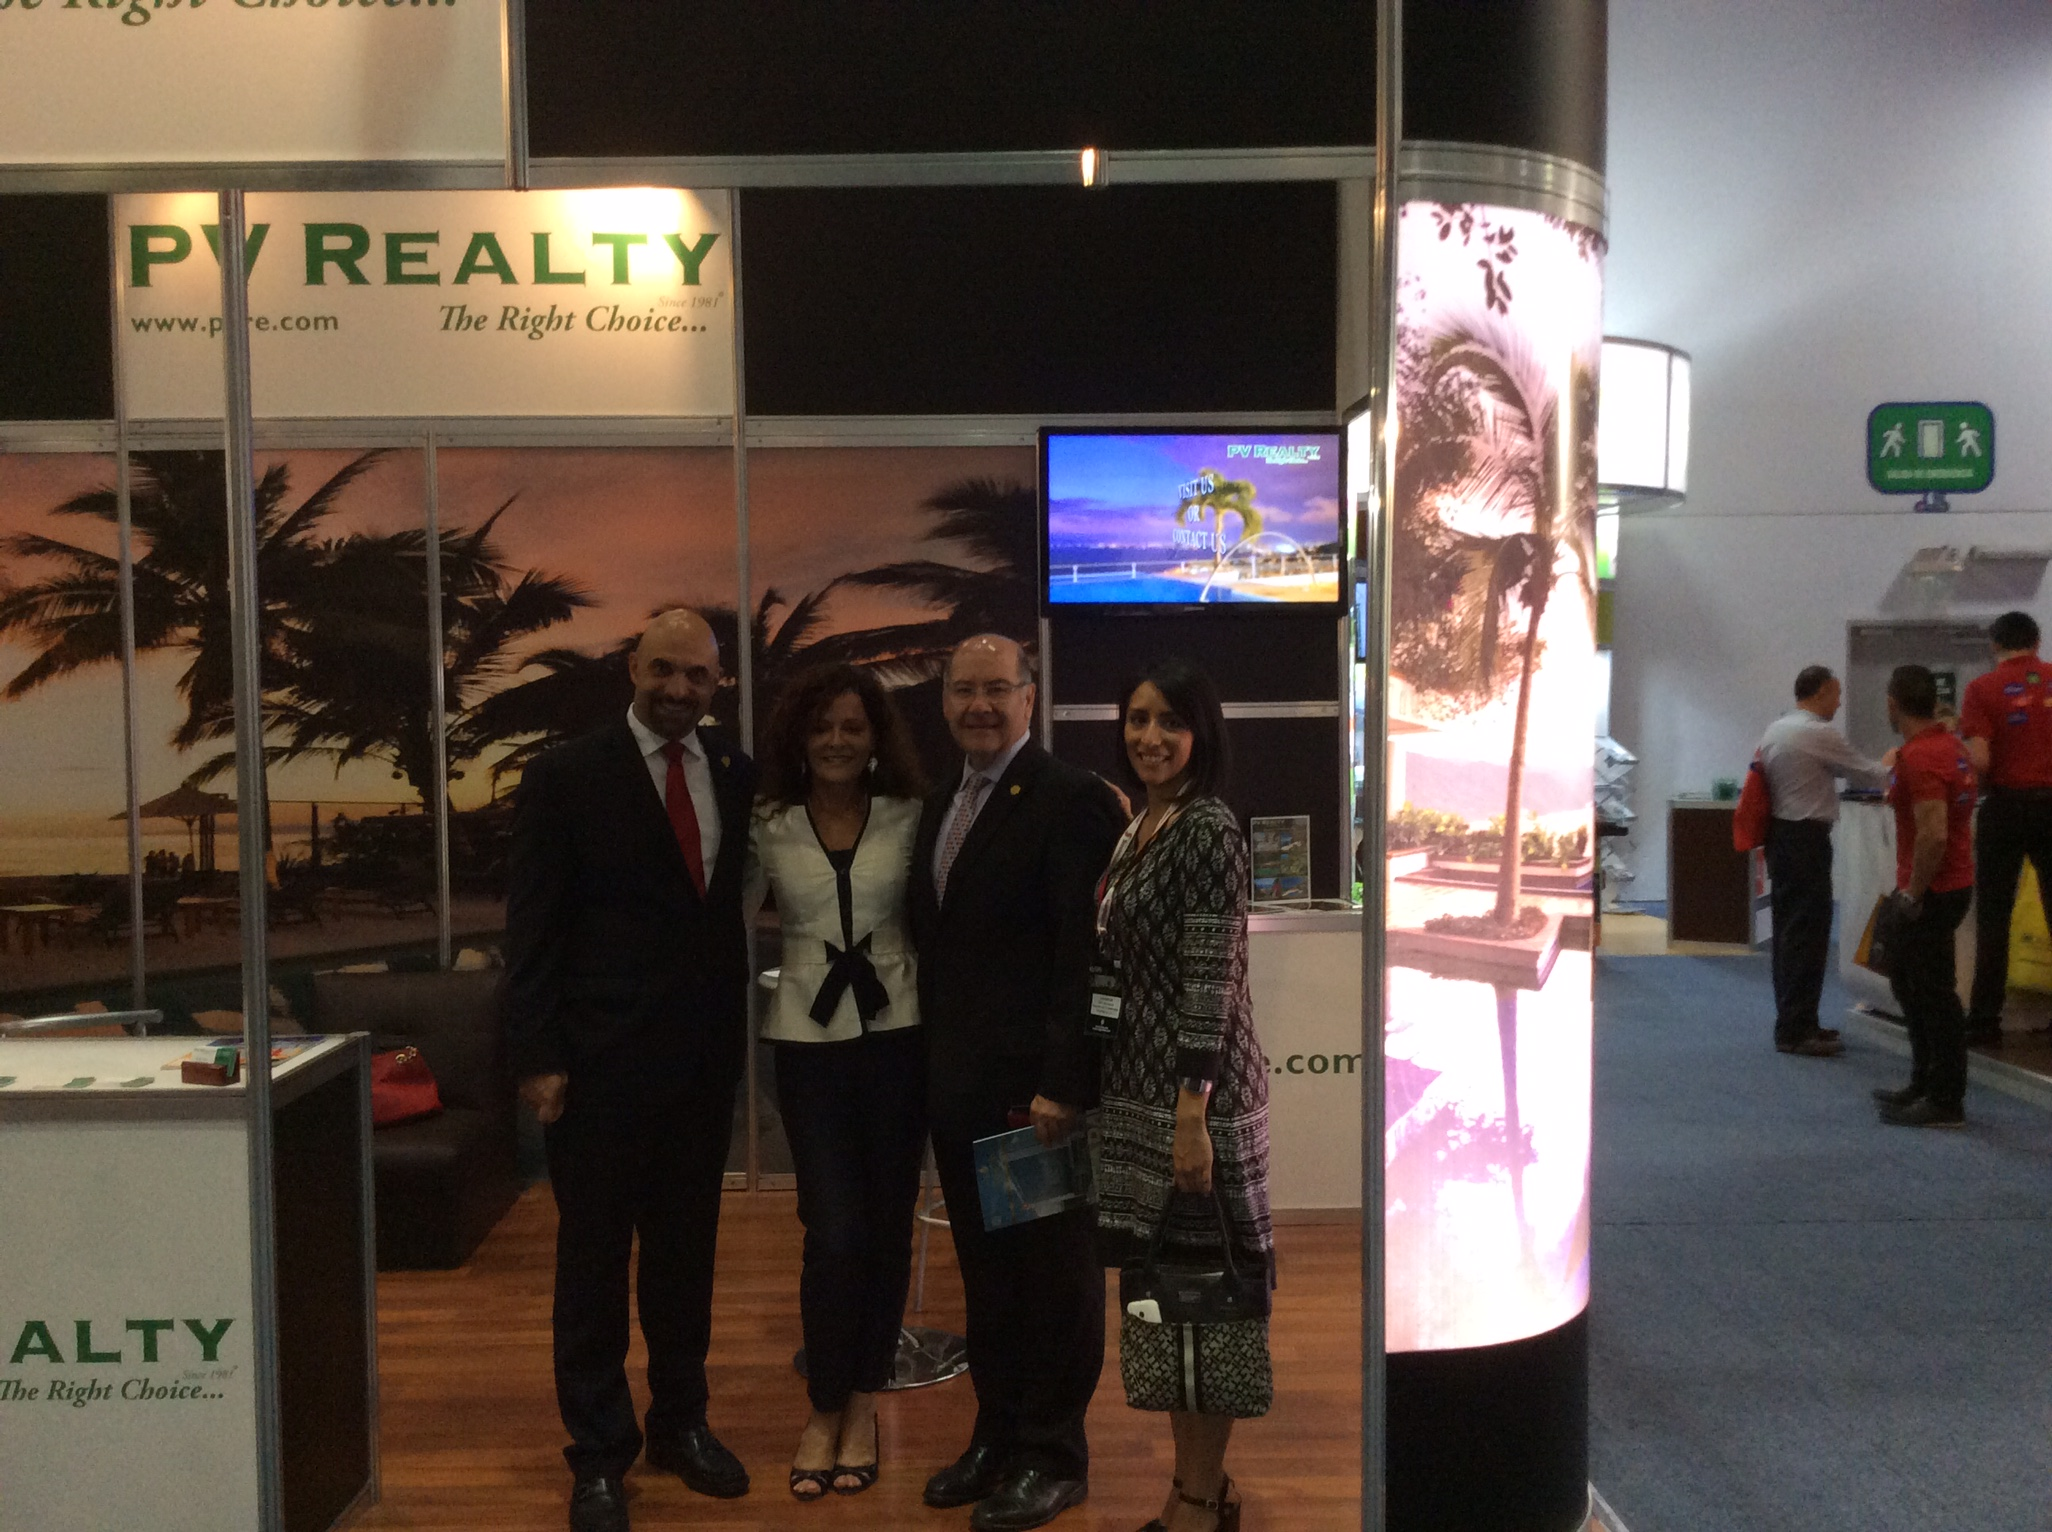 Expo SIME 2015  PV Realty, Trabajando para sus distinguidos clientes.  PV Realty  Working for its distinguished clients. IMG 2354